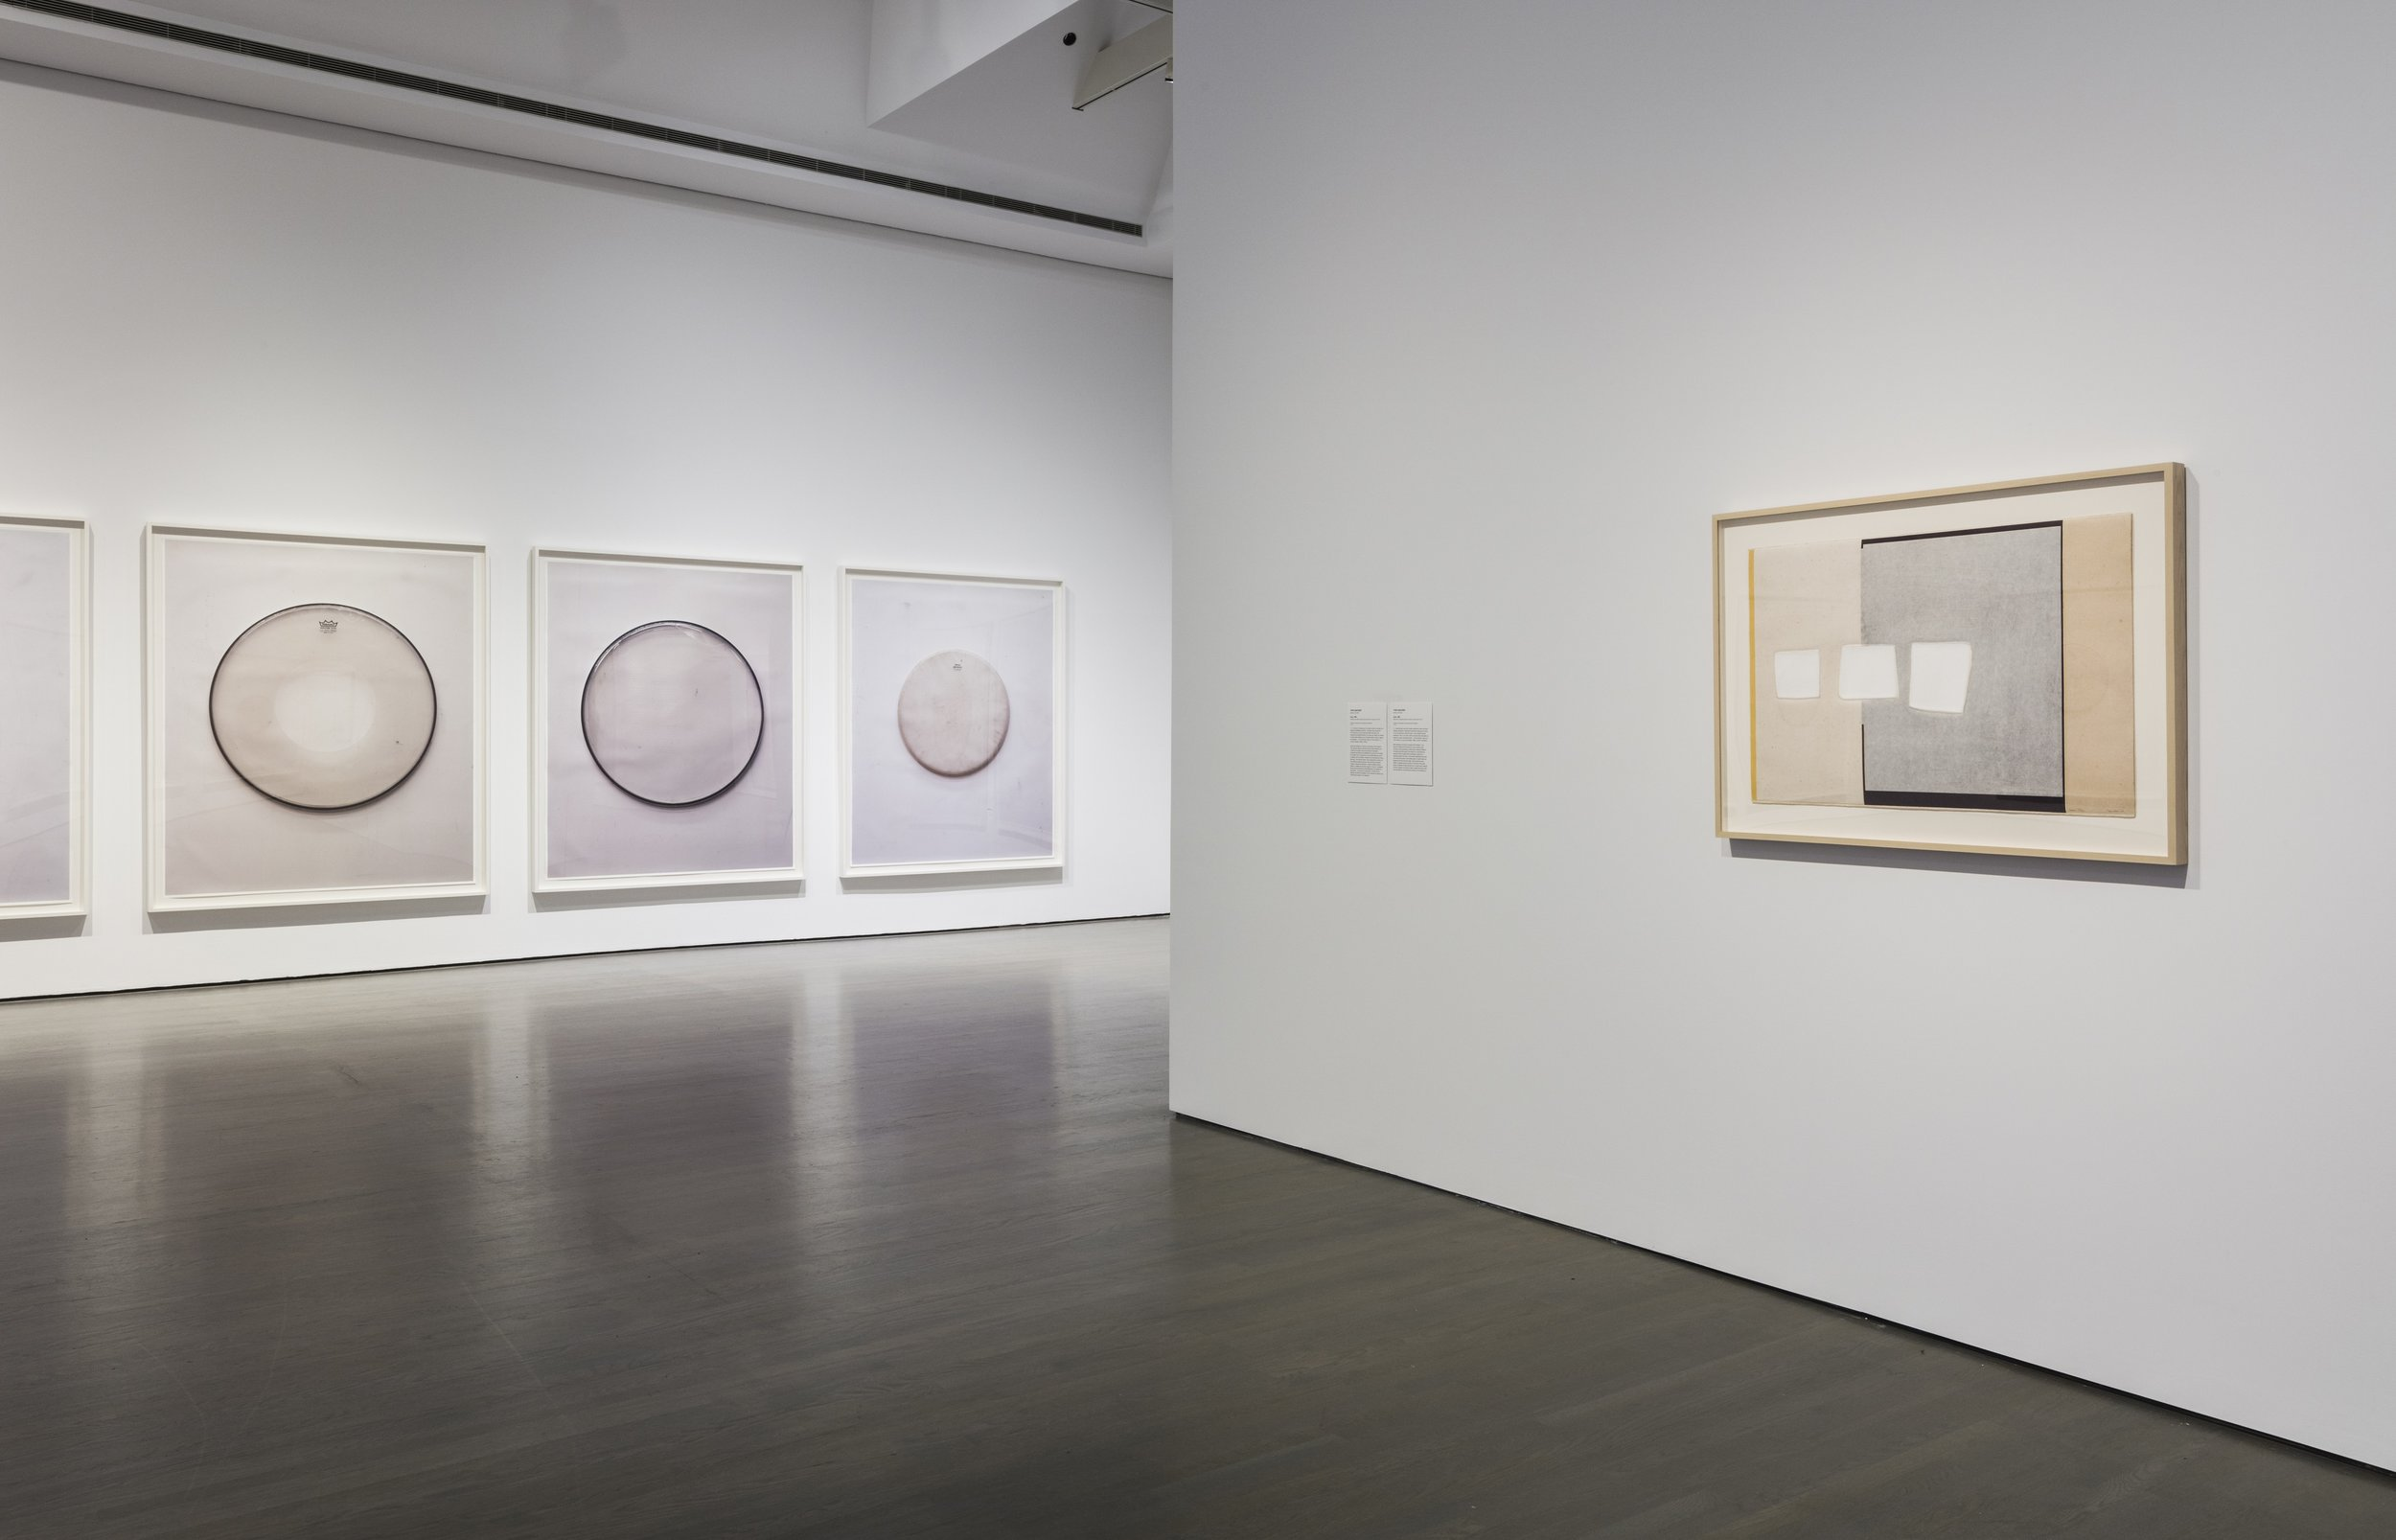 Exhibition view of  Picture for an Exhibition: The gaze listens presented at the Musée d'art contemporain de Montréal from December 15, 2017 to March 25, 2018. Photo: Richard-Max Tremblay